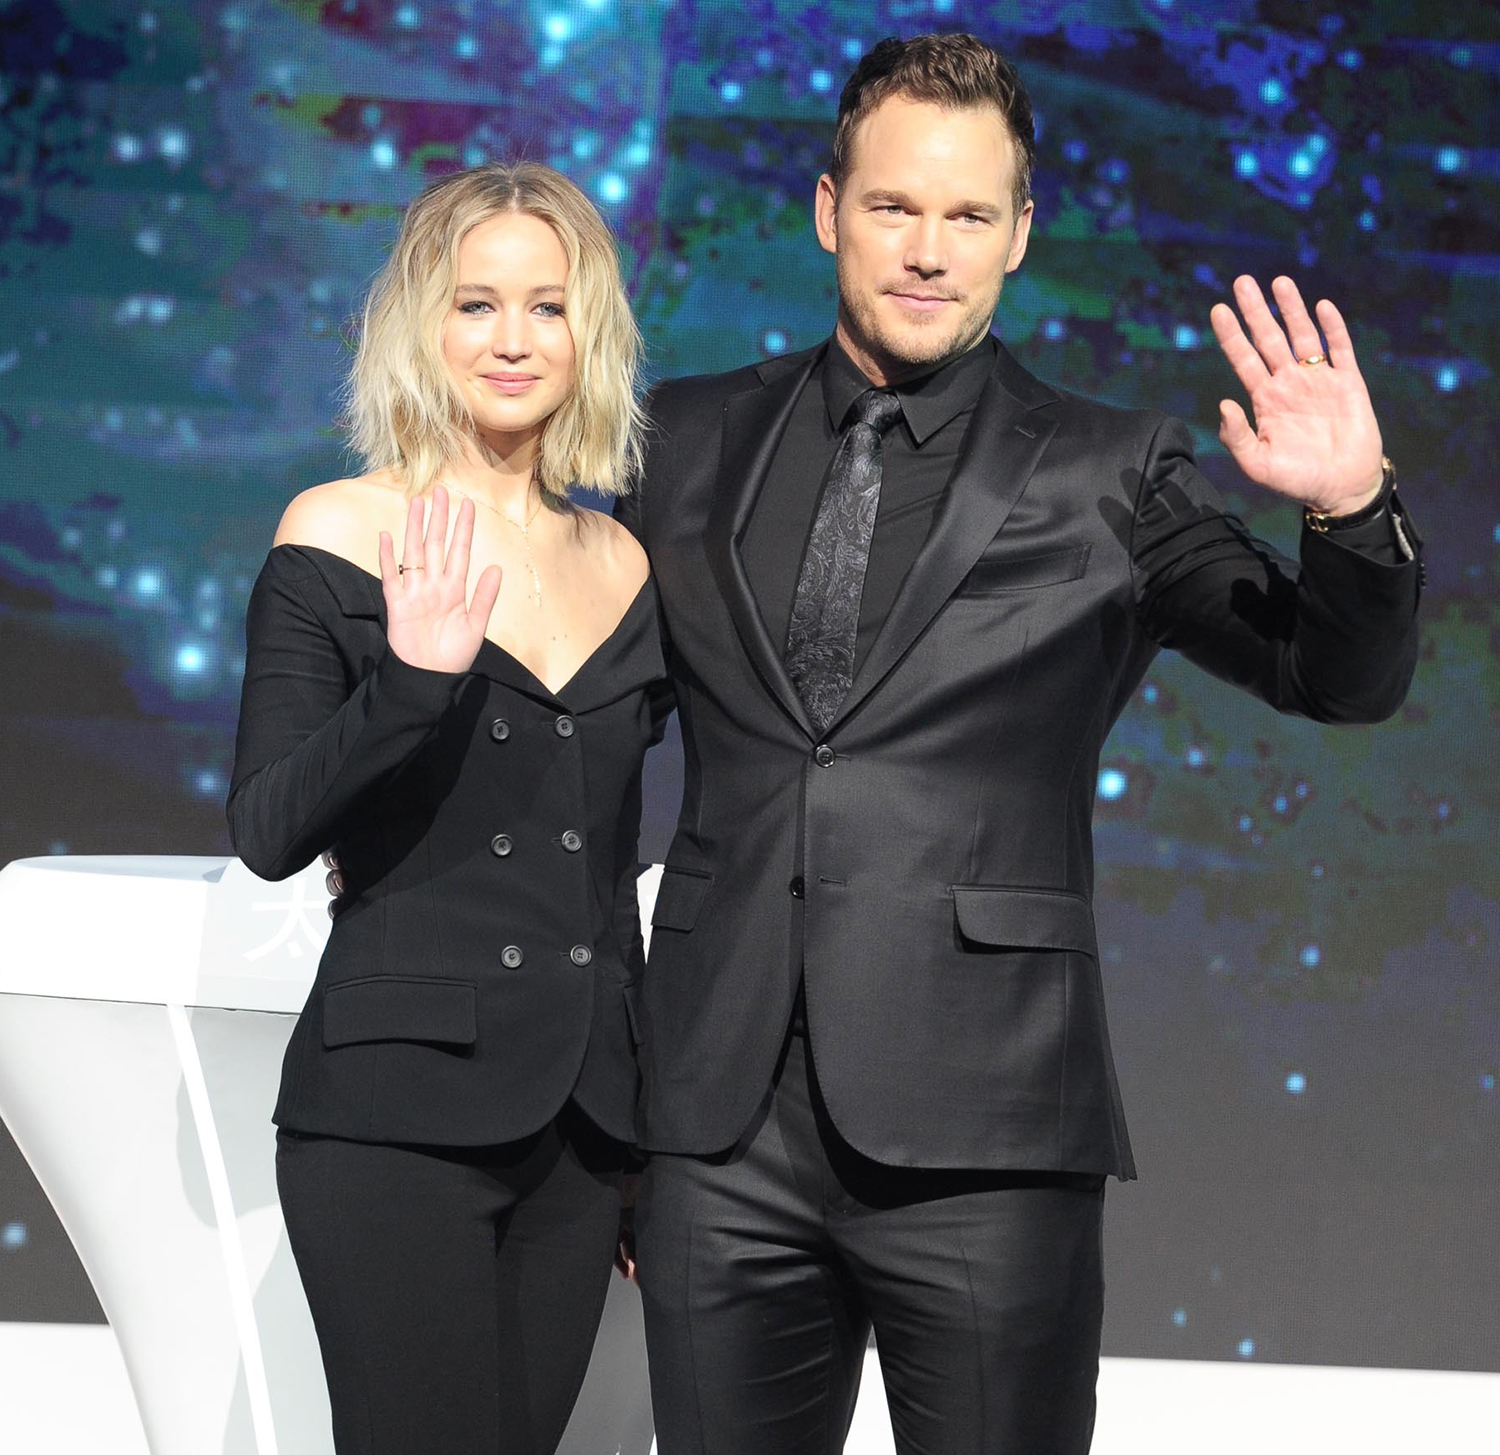 Jennifer Lawrence and Chris Pratt attend the press conference of director Morten Tyldum's film